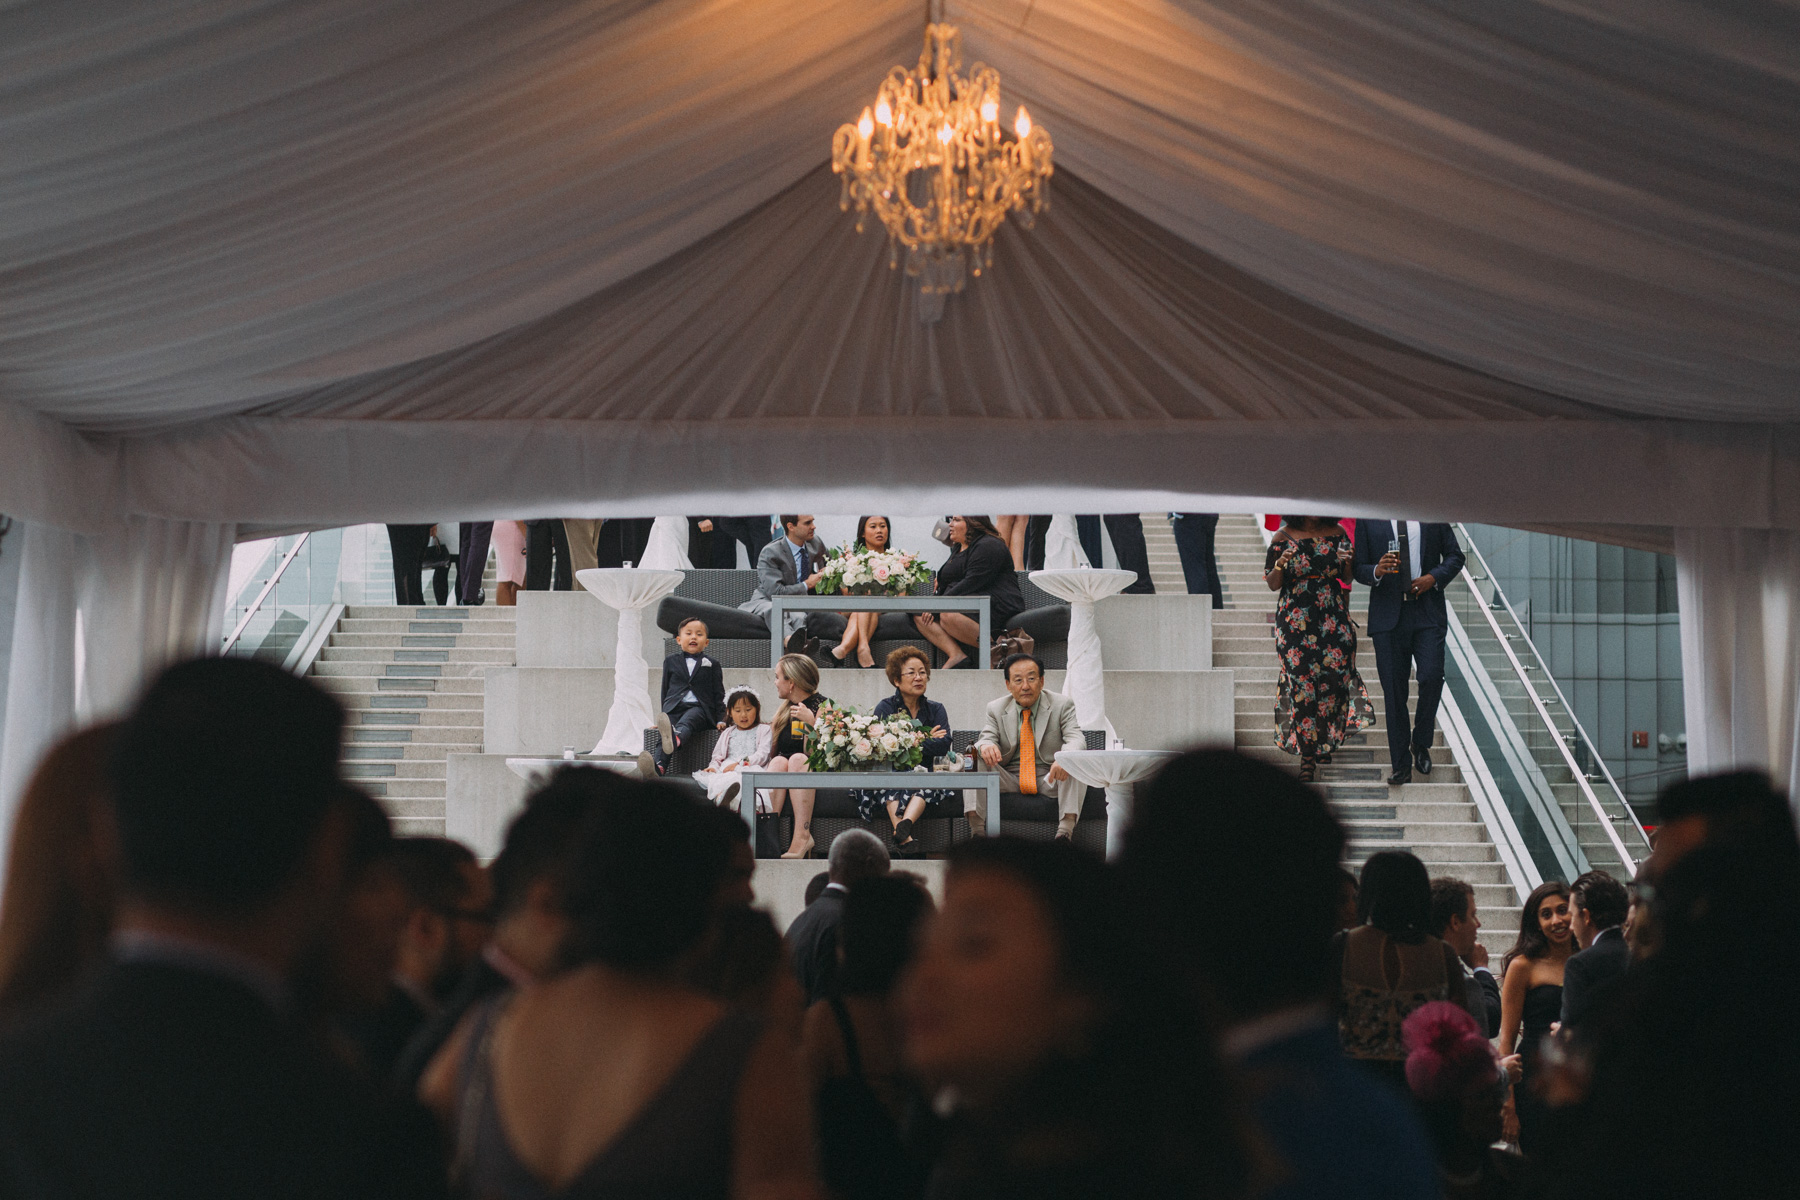 Malaparte-wedding-photography-Toronto-by-Sam-Wong-of-Artanis-Collective-Mary-Anne-Bourne_043.jpg